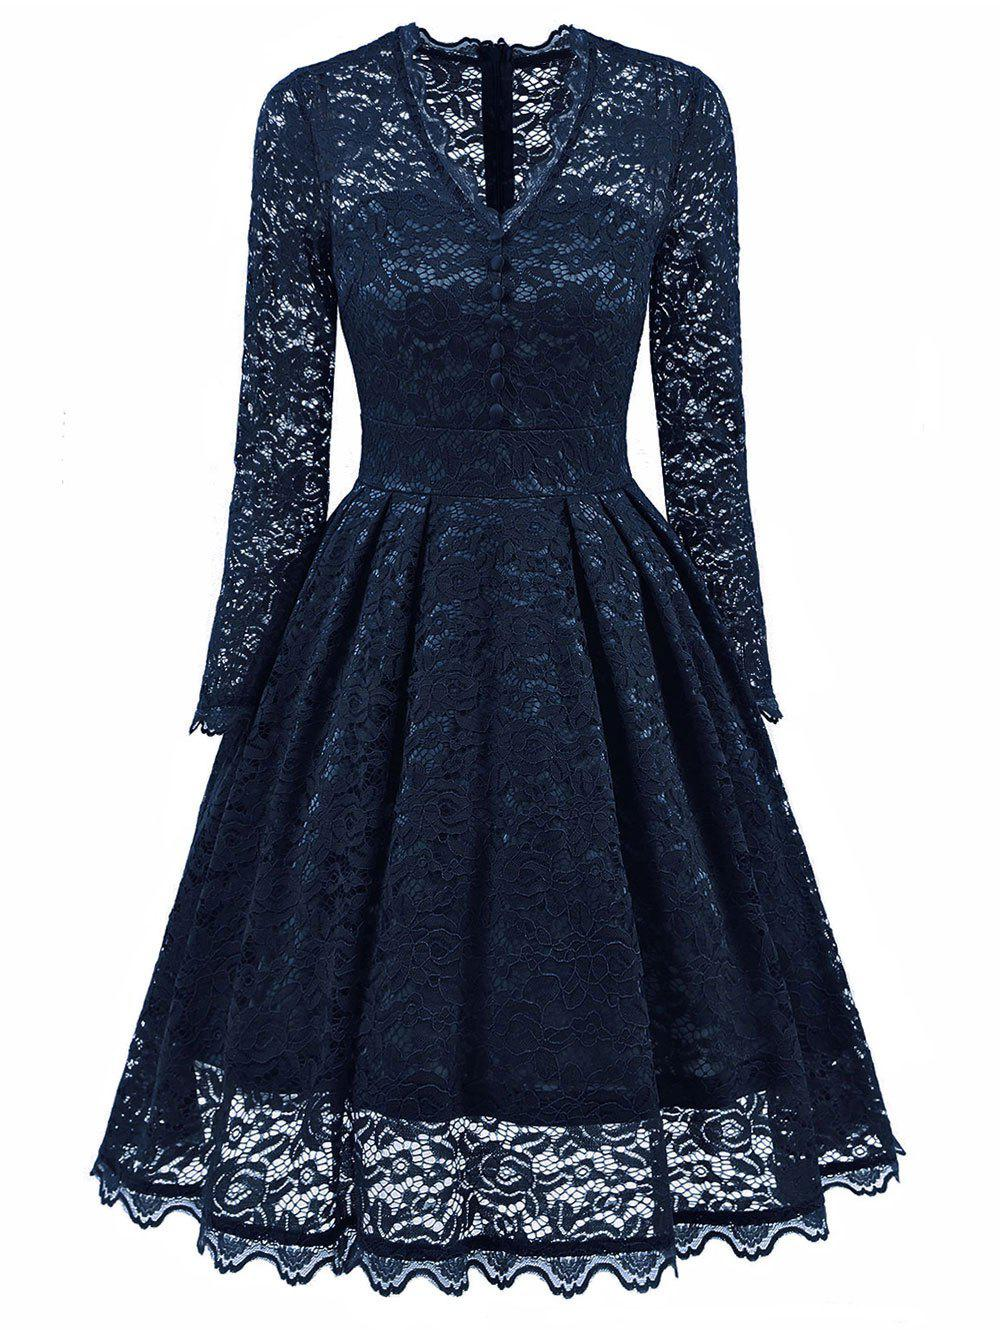 Online V Neck Buttons Embellished Lace Dress